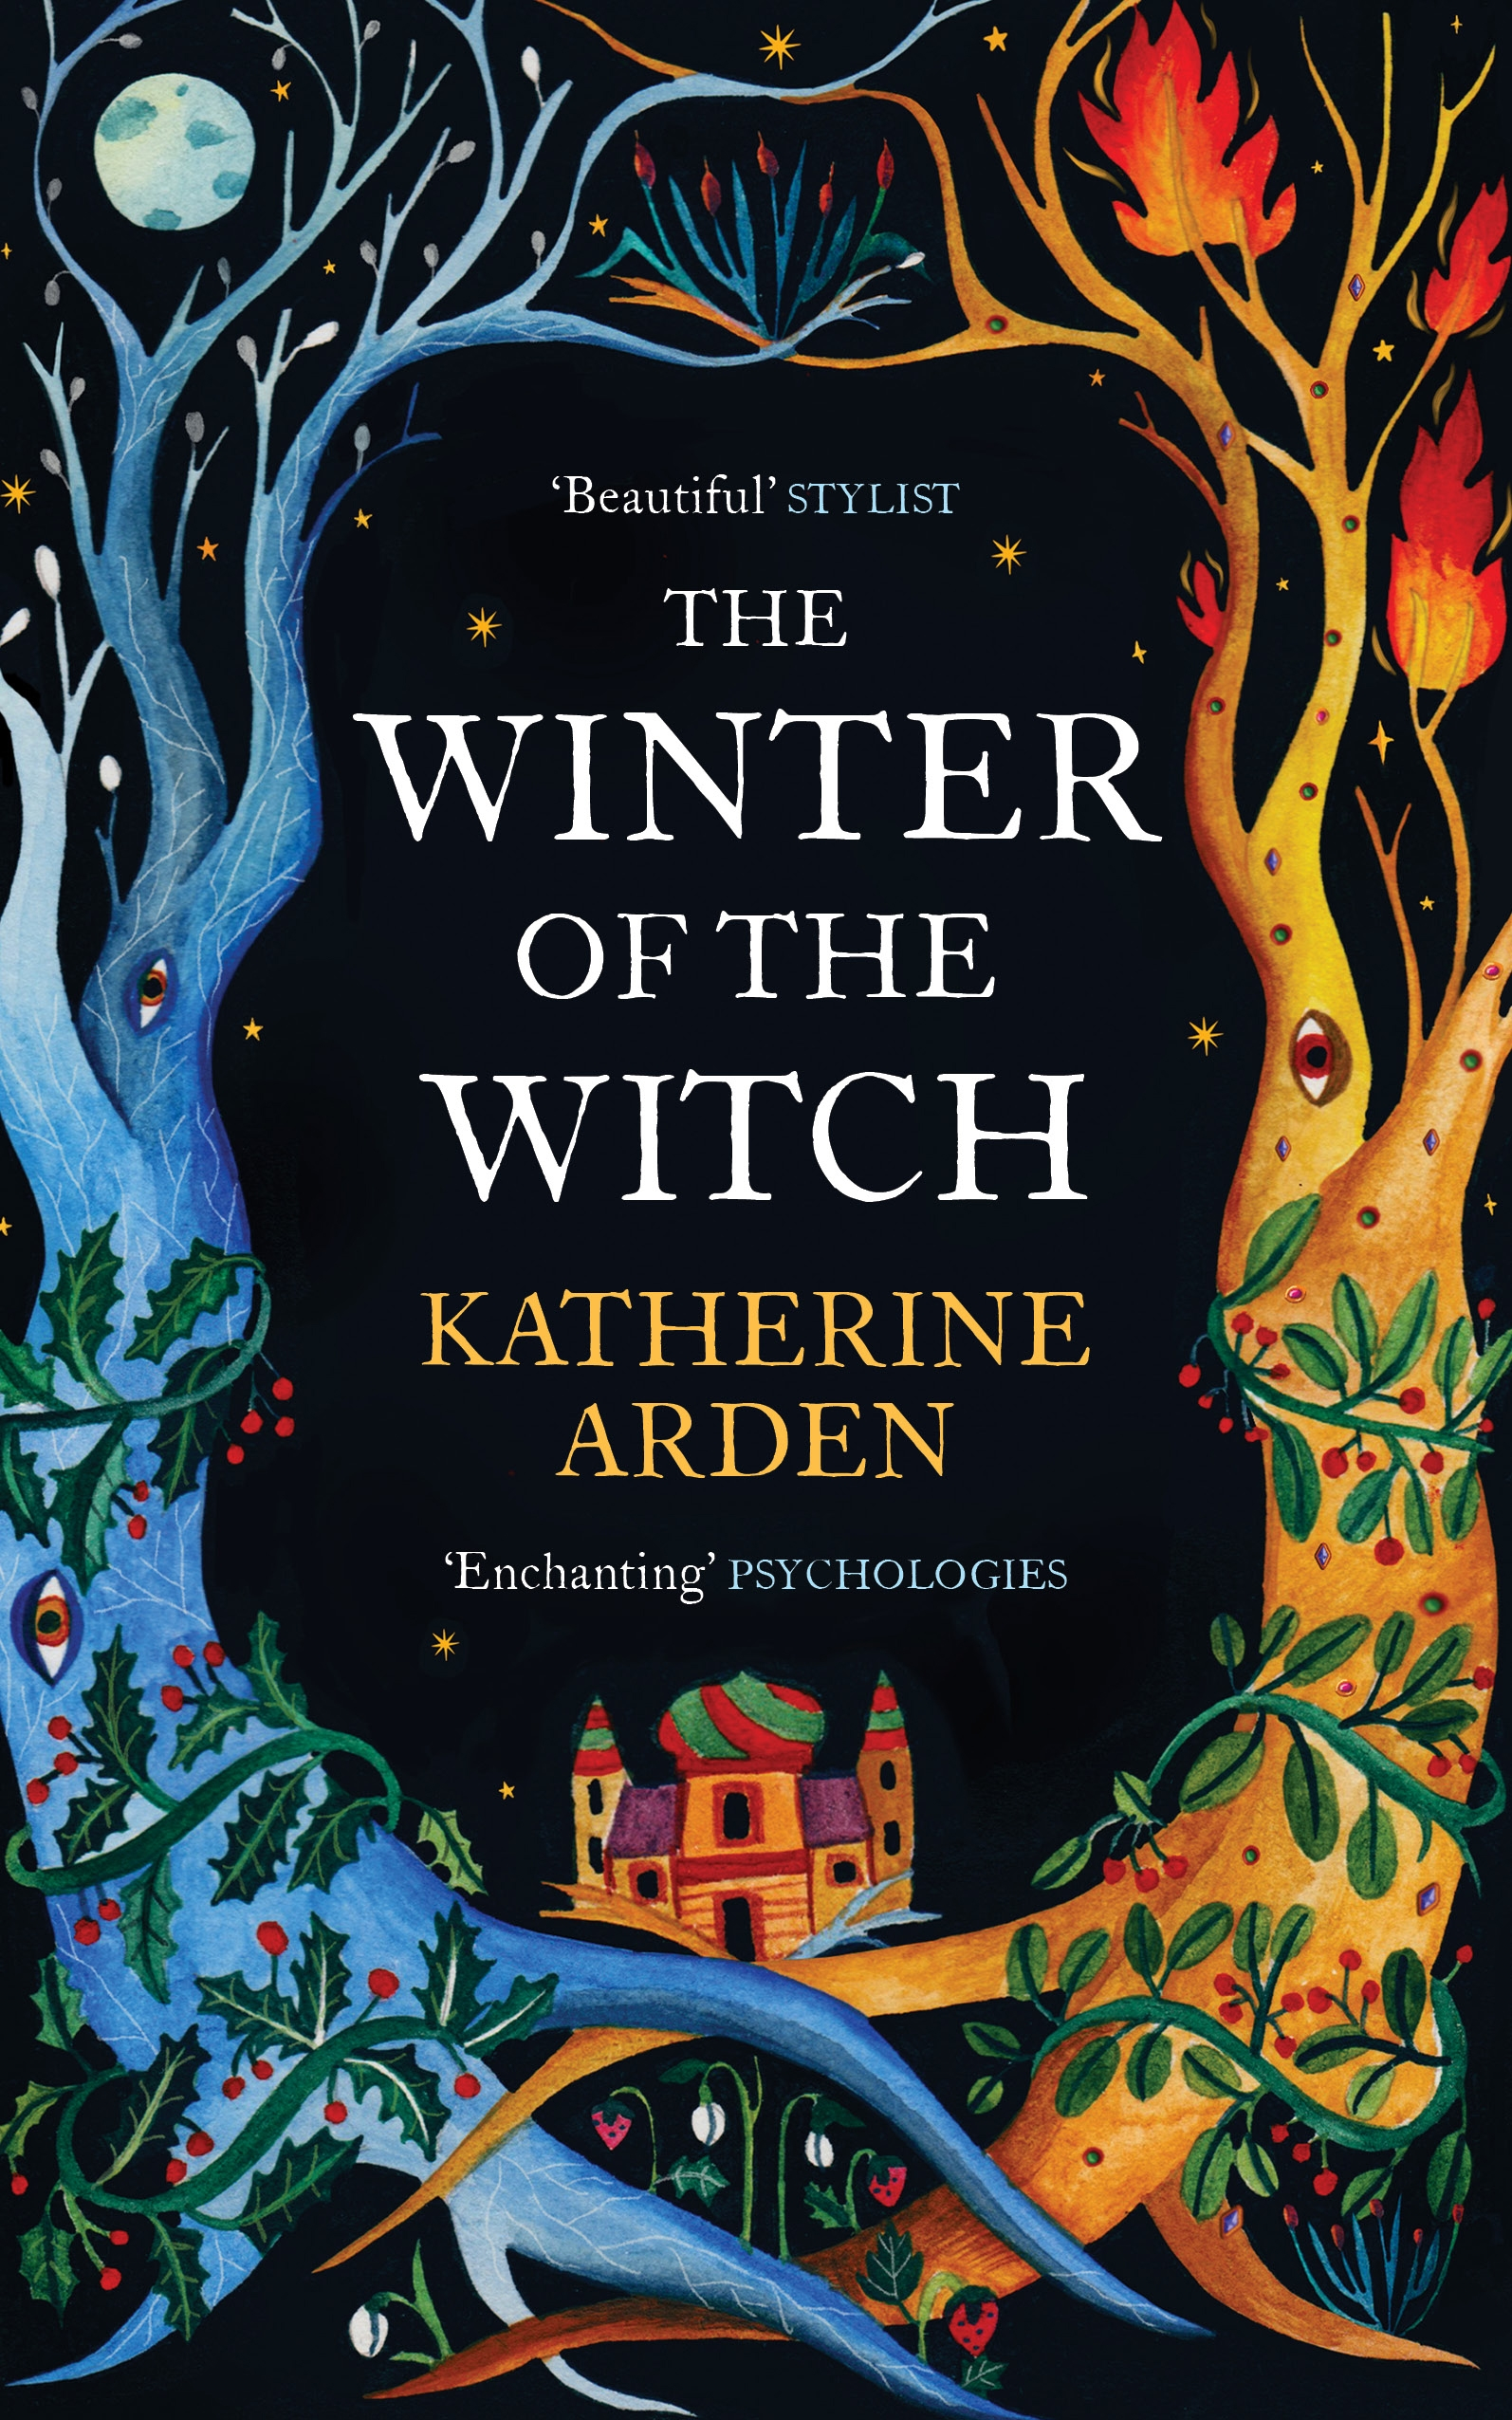 The Winter of the Witch by Katherine Arden - Penguin Books Australia